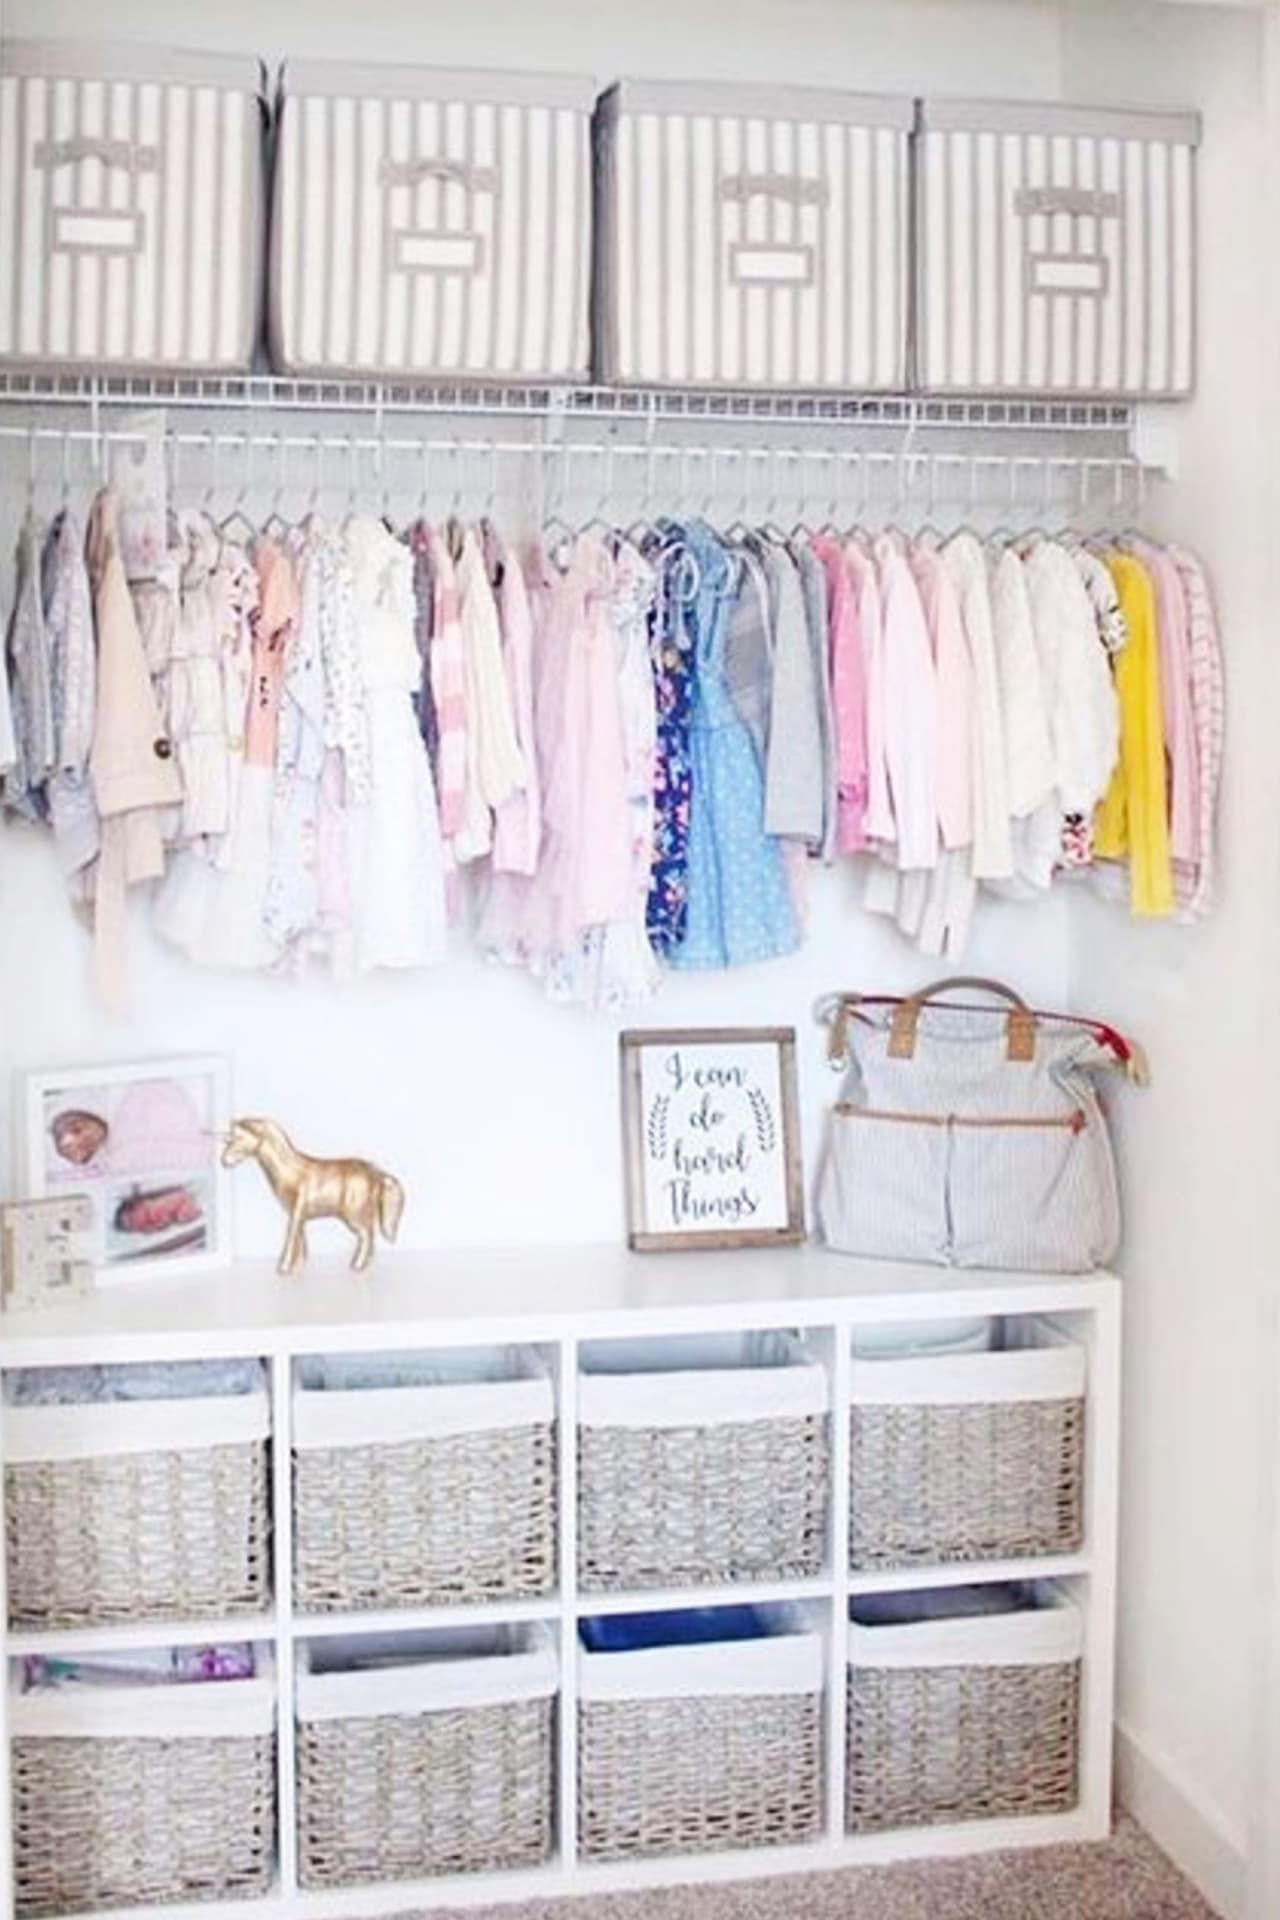 Baby Closet Ideas 47 Nursery Closet Organization Storage And Baby Closet Organizer Ideas Baby Room Organization Diy Nursery Closet Baby Nursery Closet